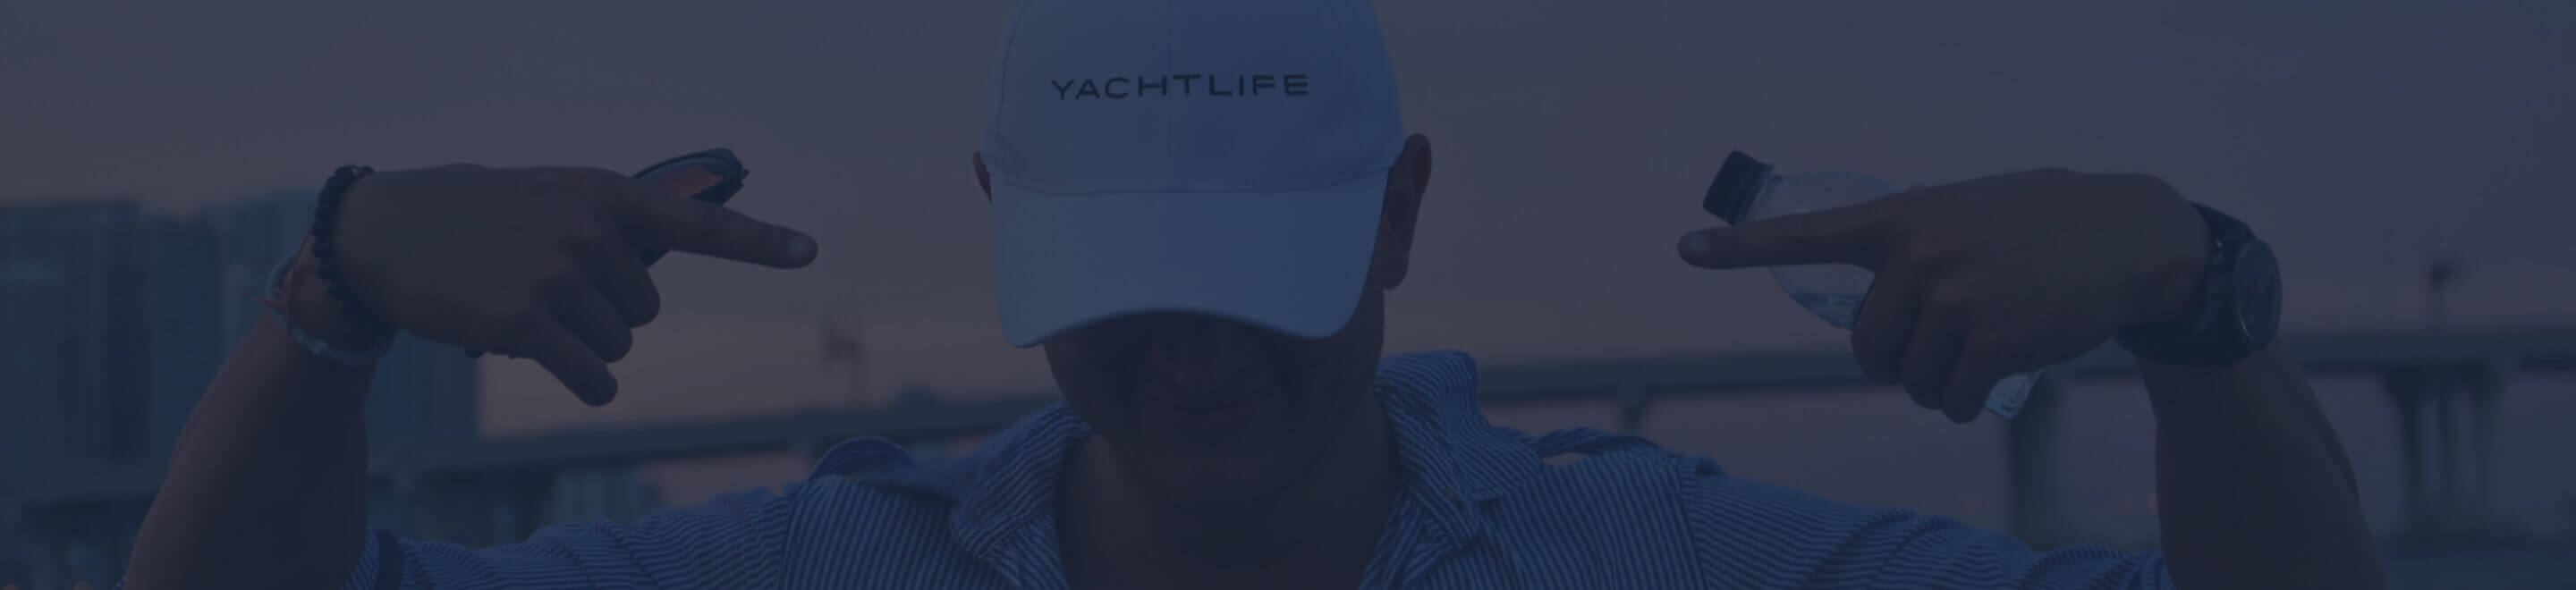 YachtLife: About Us - Yacht Charter Team/ Club